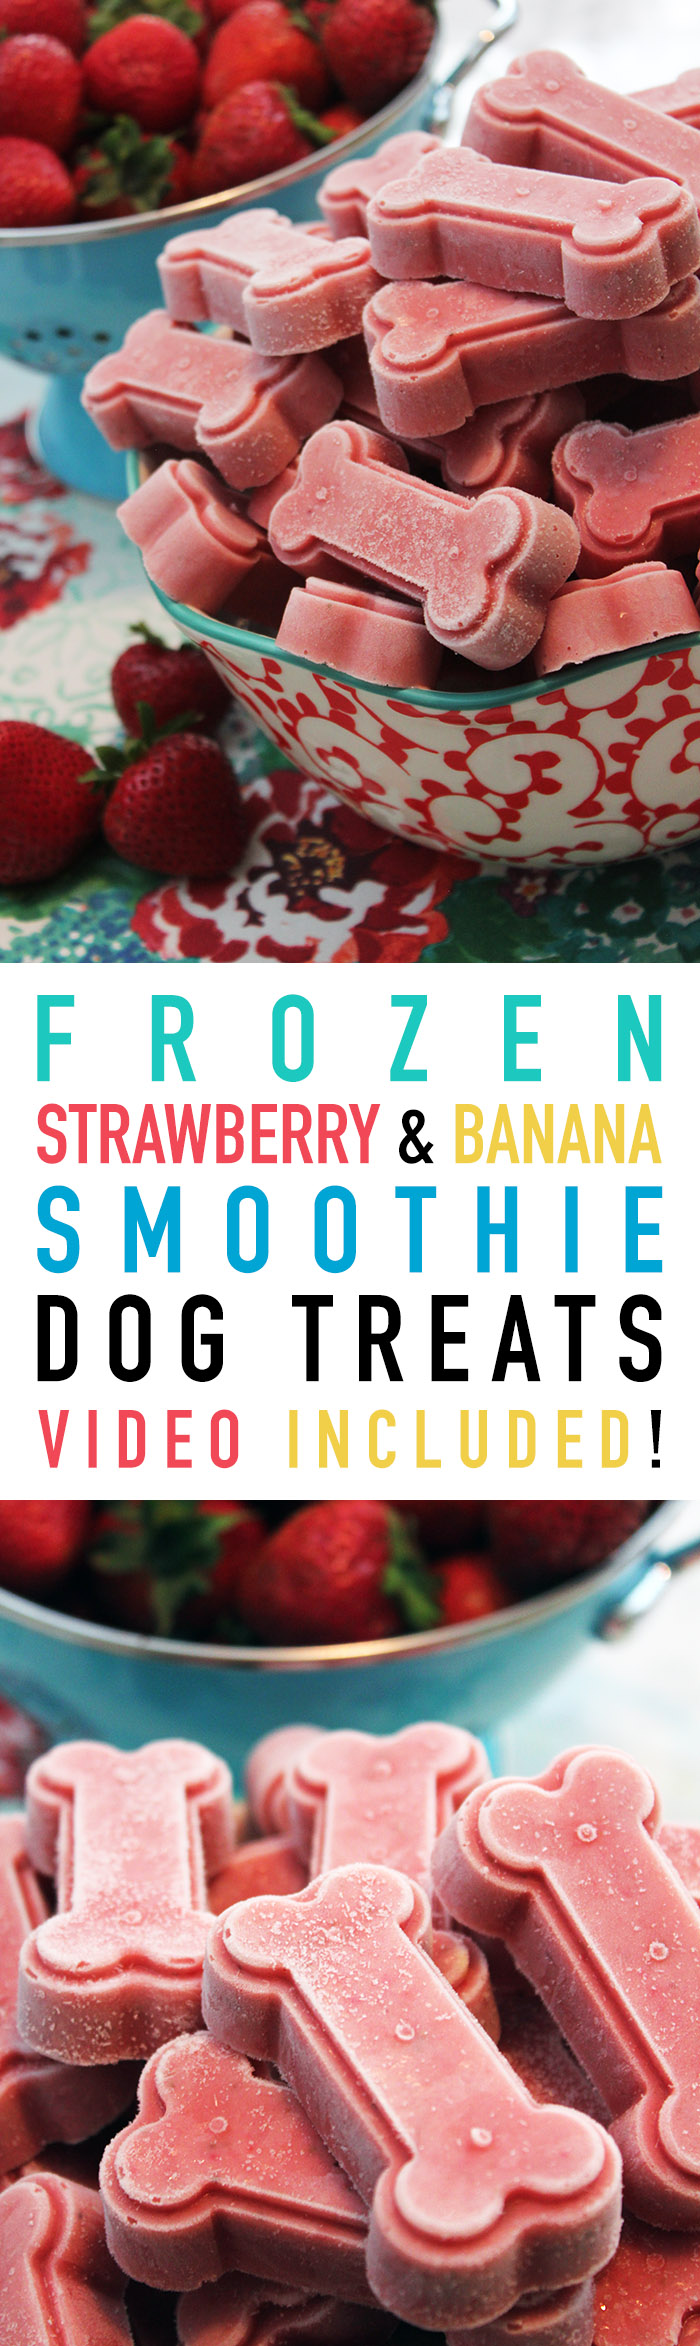 Frozen Strawberry & banana Smoothie Dog Treats | Video Included with Recipe!